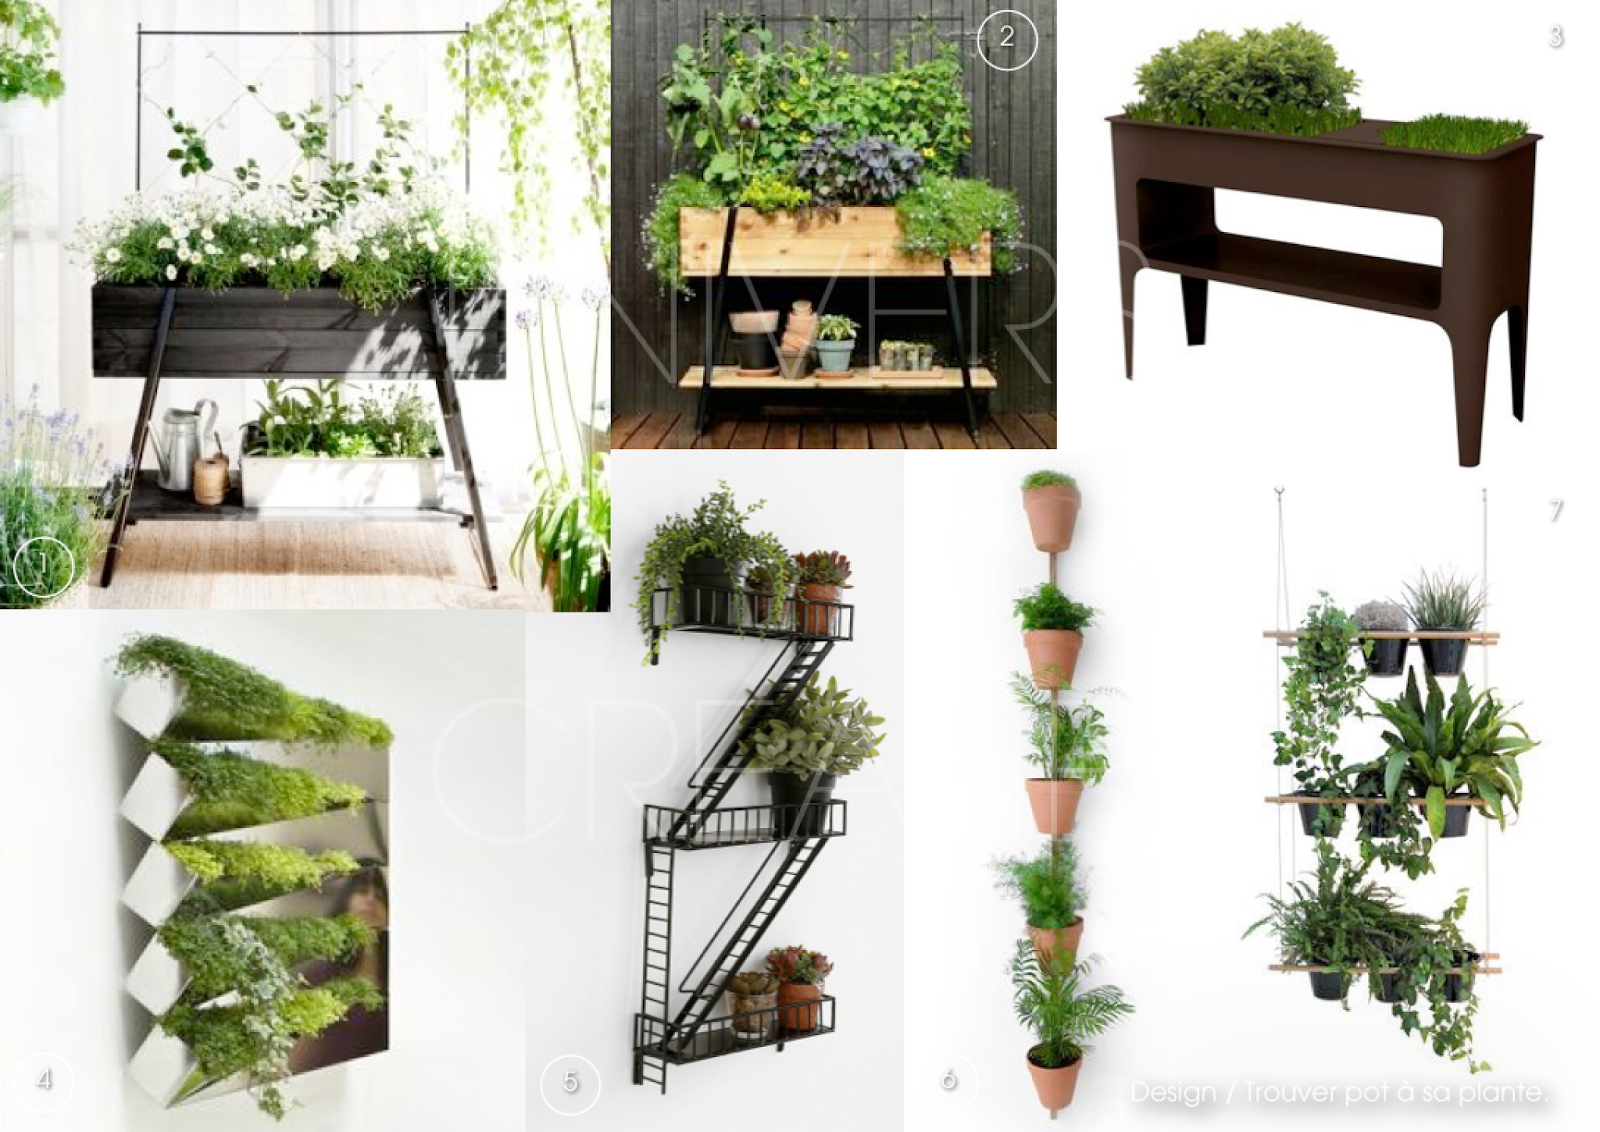 Univers creatifs design trouver pot sa plante for Pot plantes interieur